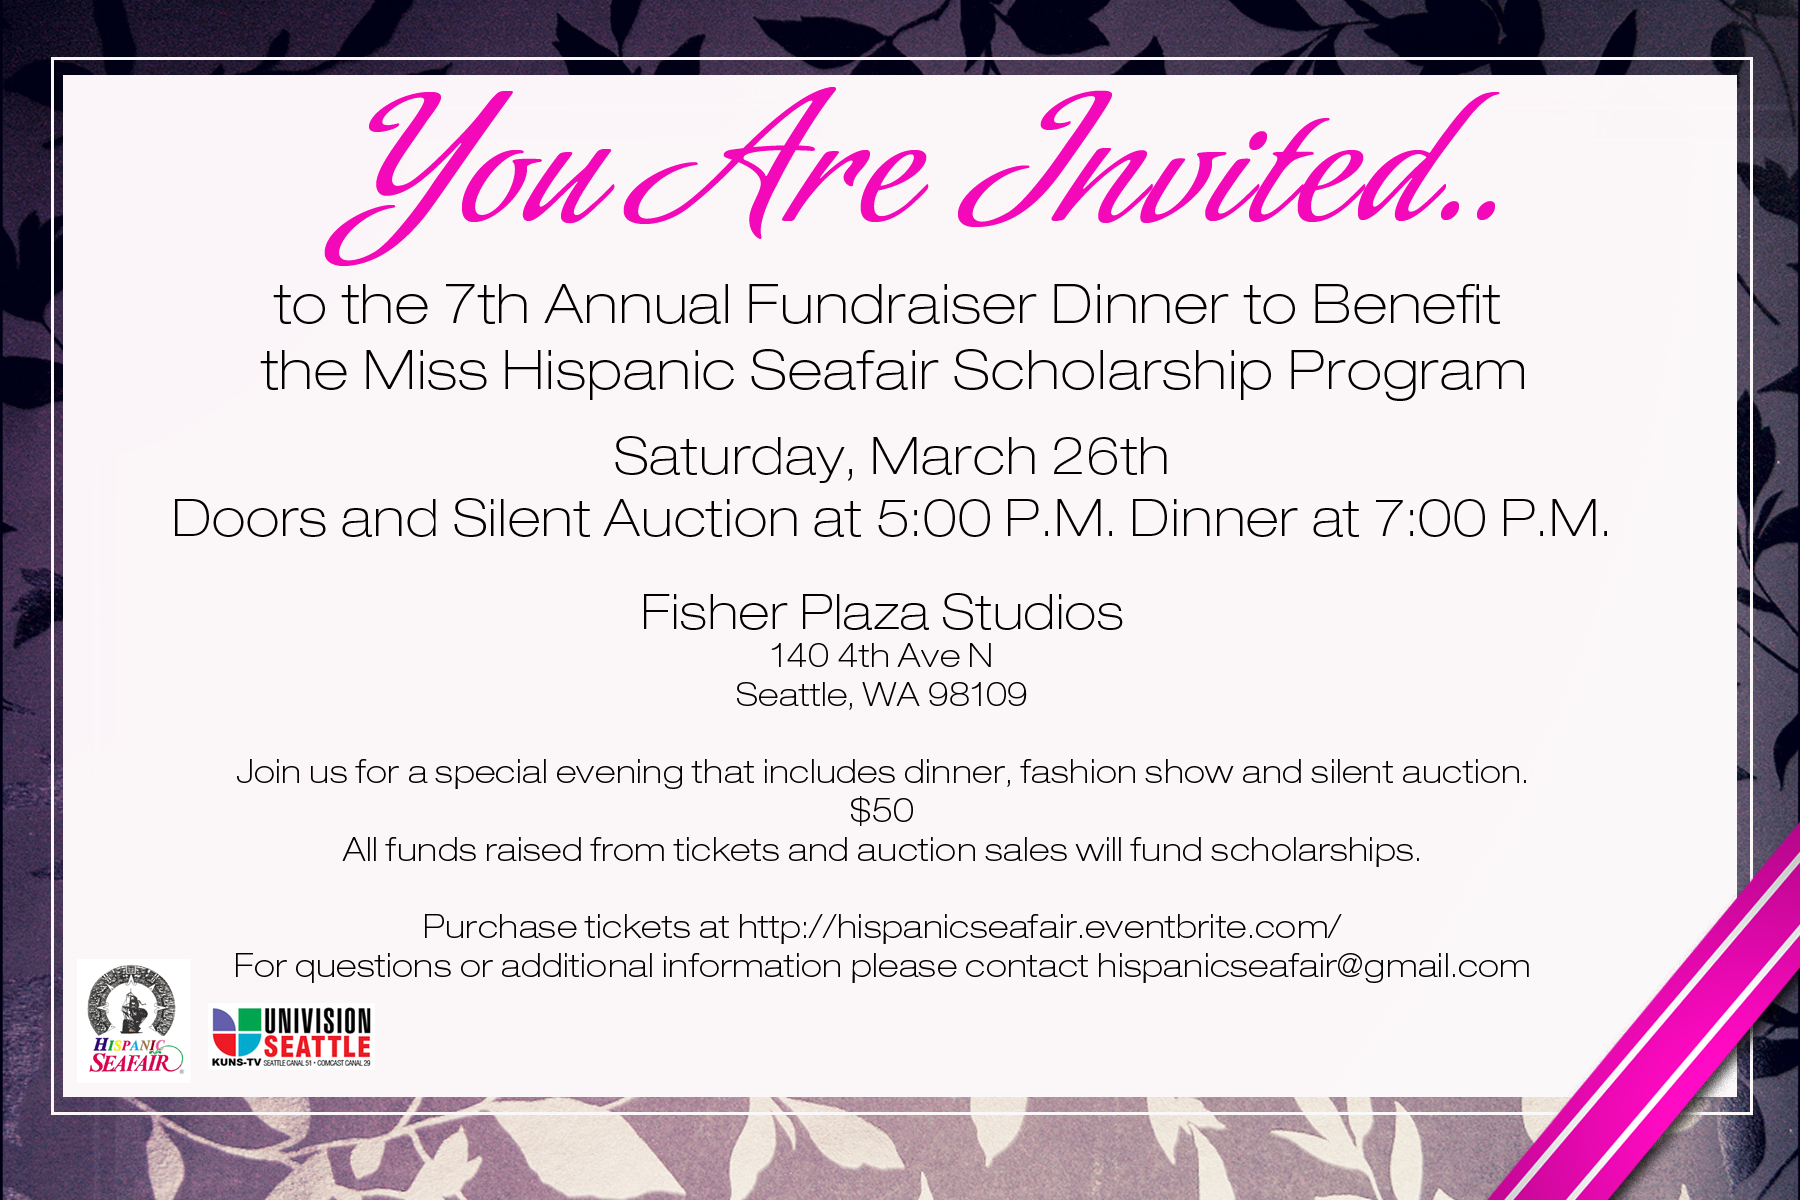 Miss Hispanic Seafair Fundraising Dinner Fashion Show And